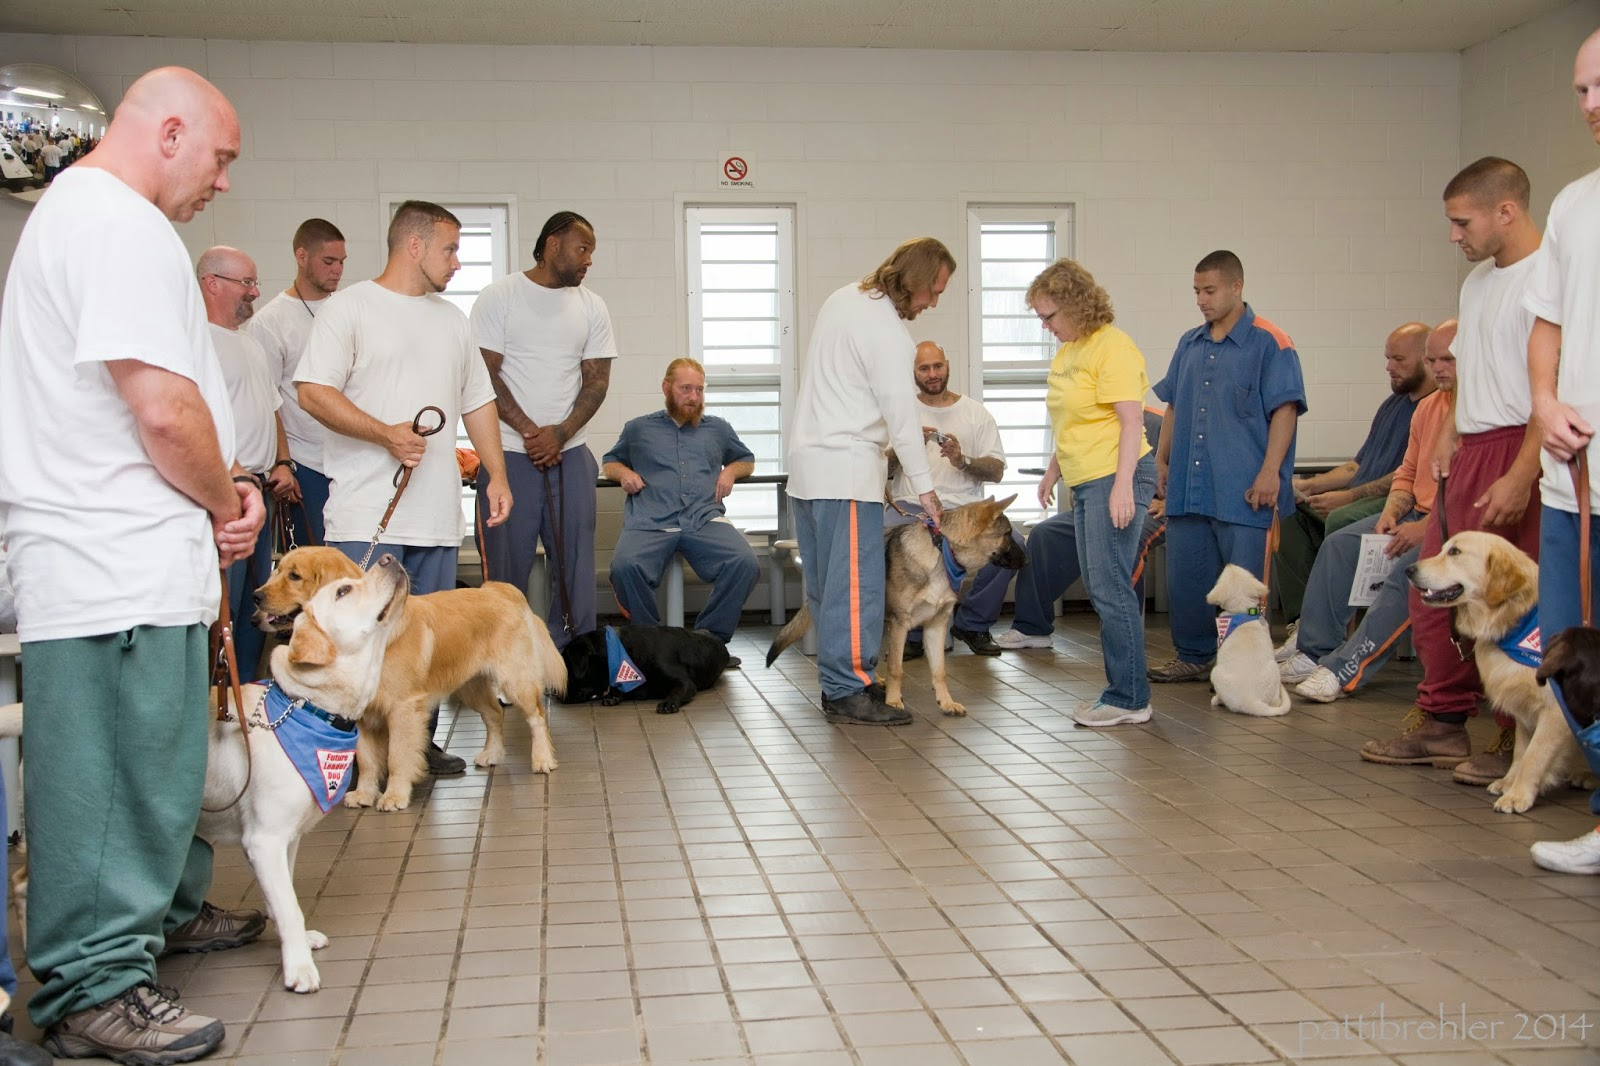 More than a dozen men and one woman are standing or sitting around a room. The men are wearing prison garb, blue or green pants with white t-shirts or blue shirts. The woman is wearing blue jeans and a yellow shirt. There are many puppies with the men, some golden retrievers, black and yellow labs, and one german shepherd. The woman is going to each team and greeting the handler and dog.